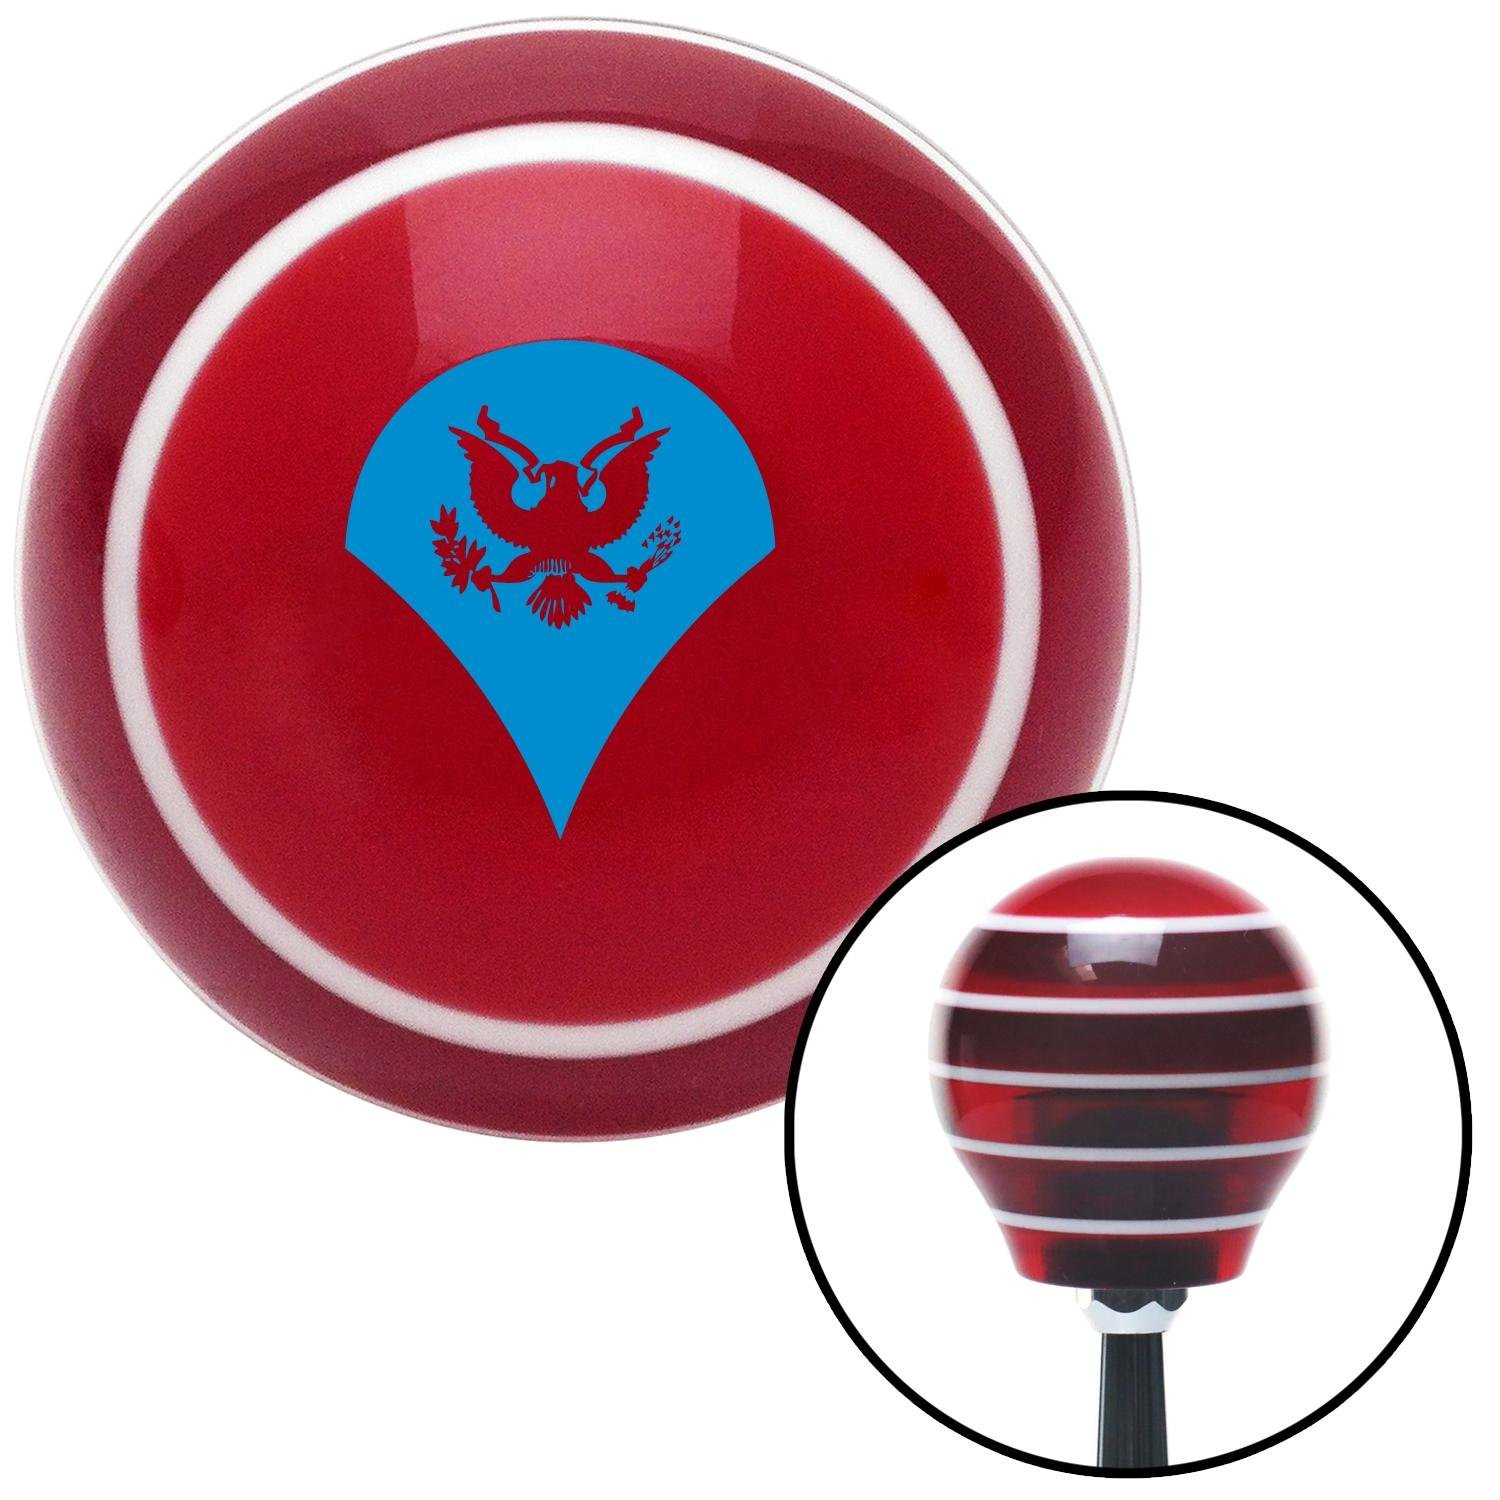 Blue Specialist American Shifter 115461 Red Stripe Shift Knob with M16 x 1.5 Insert